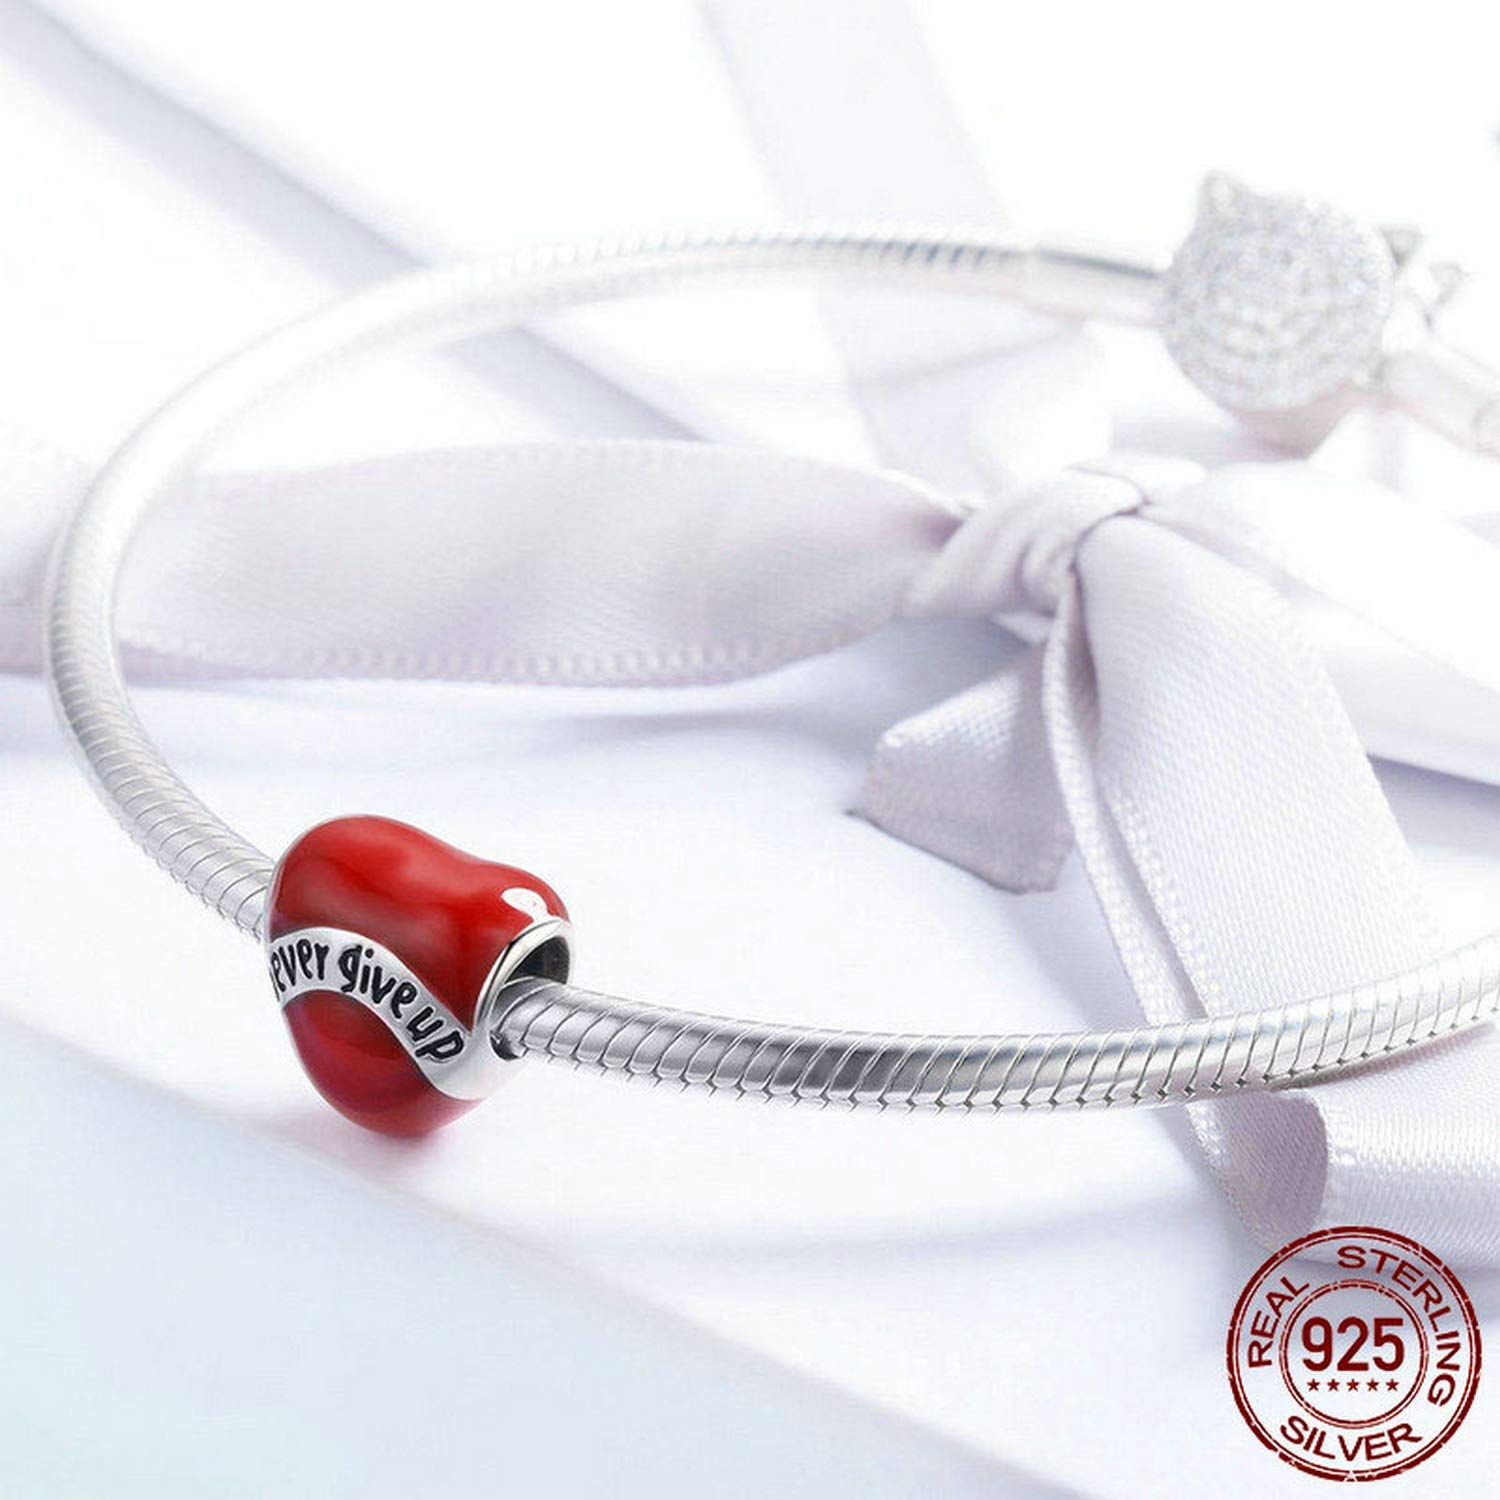 MMC Silver Red Heart Beauty Charm Never Give Up Luxury Beads Bracelets